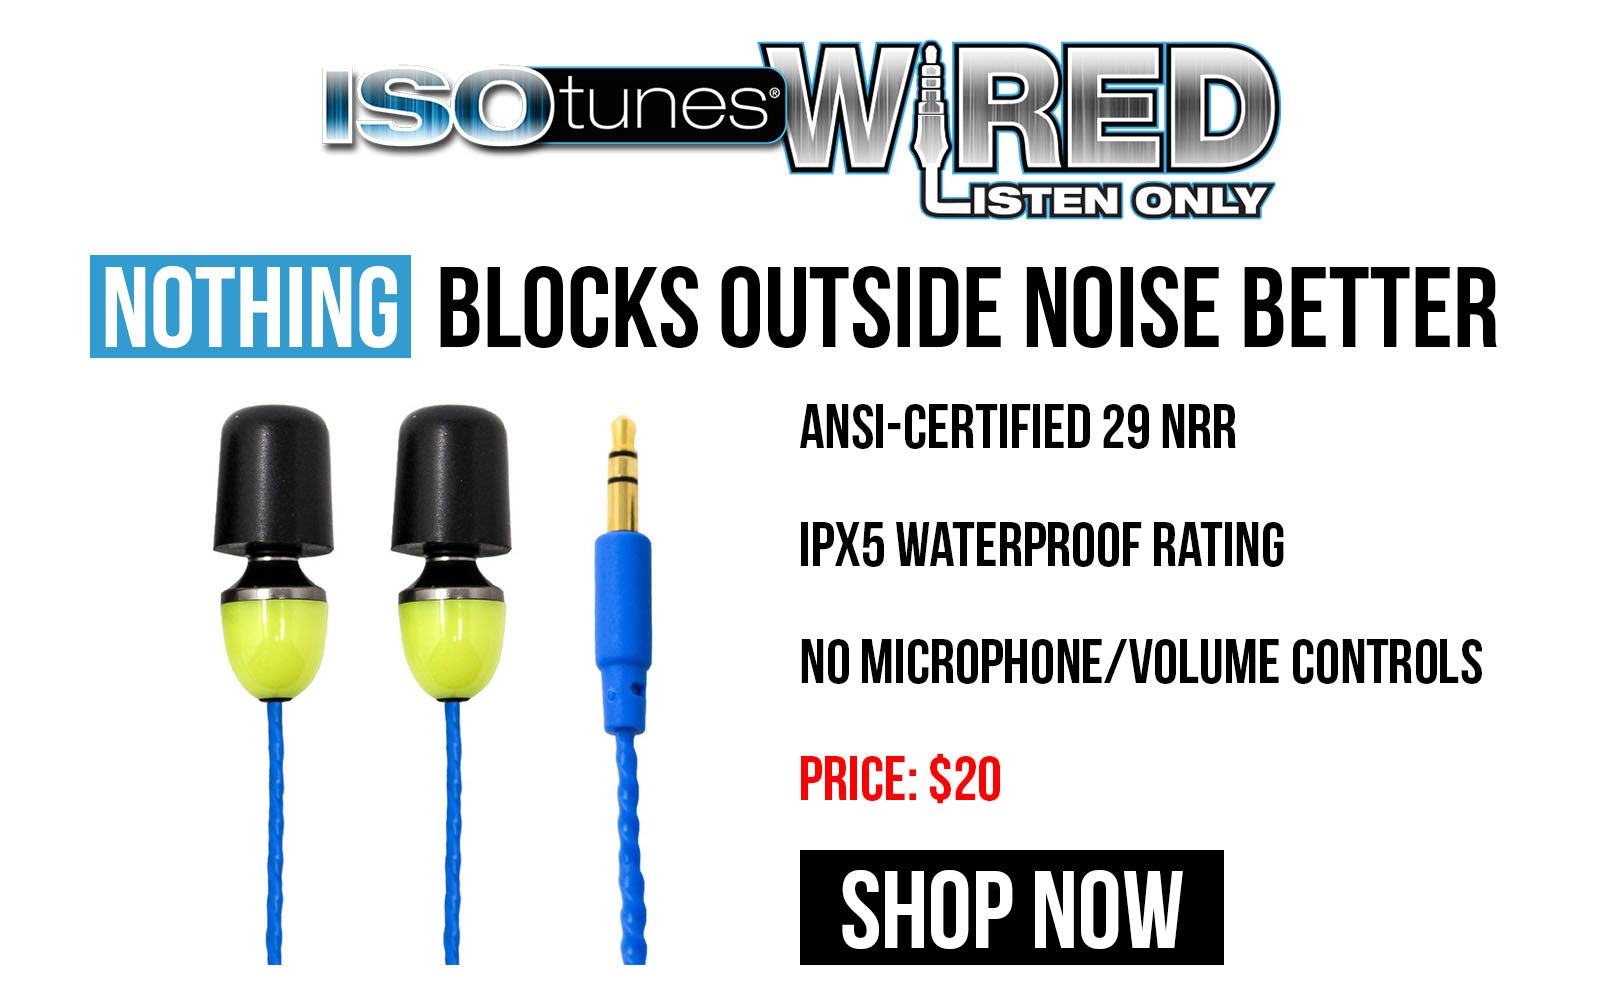 ISOtunes Wired Listen Only